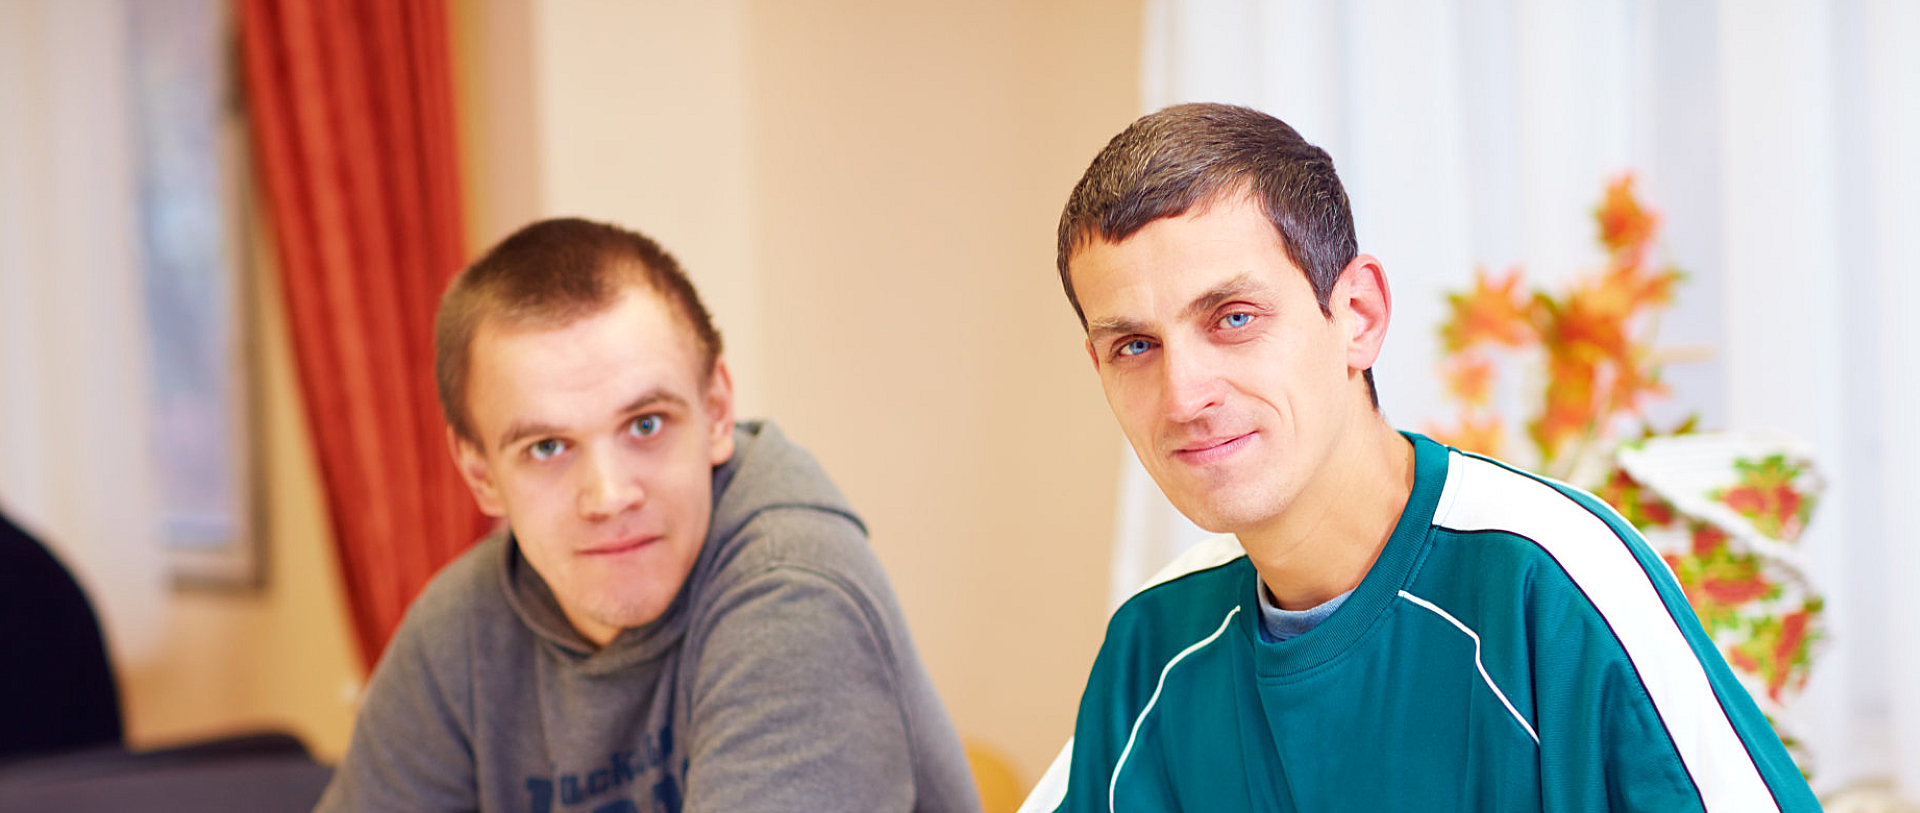 two men with disability smiling